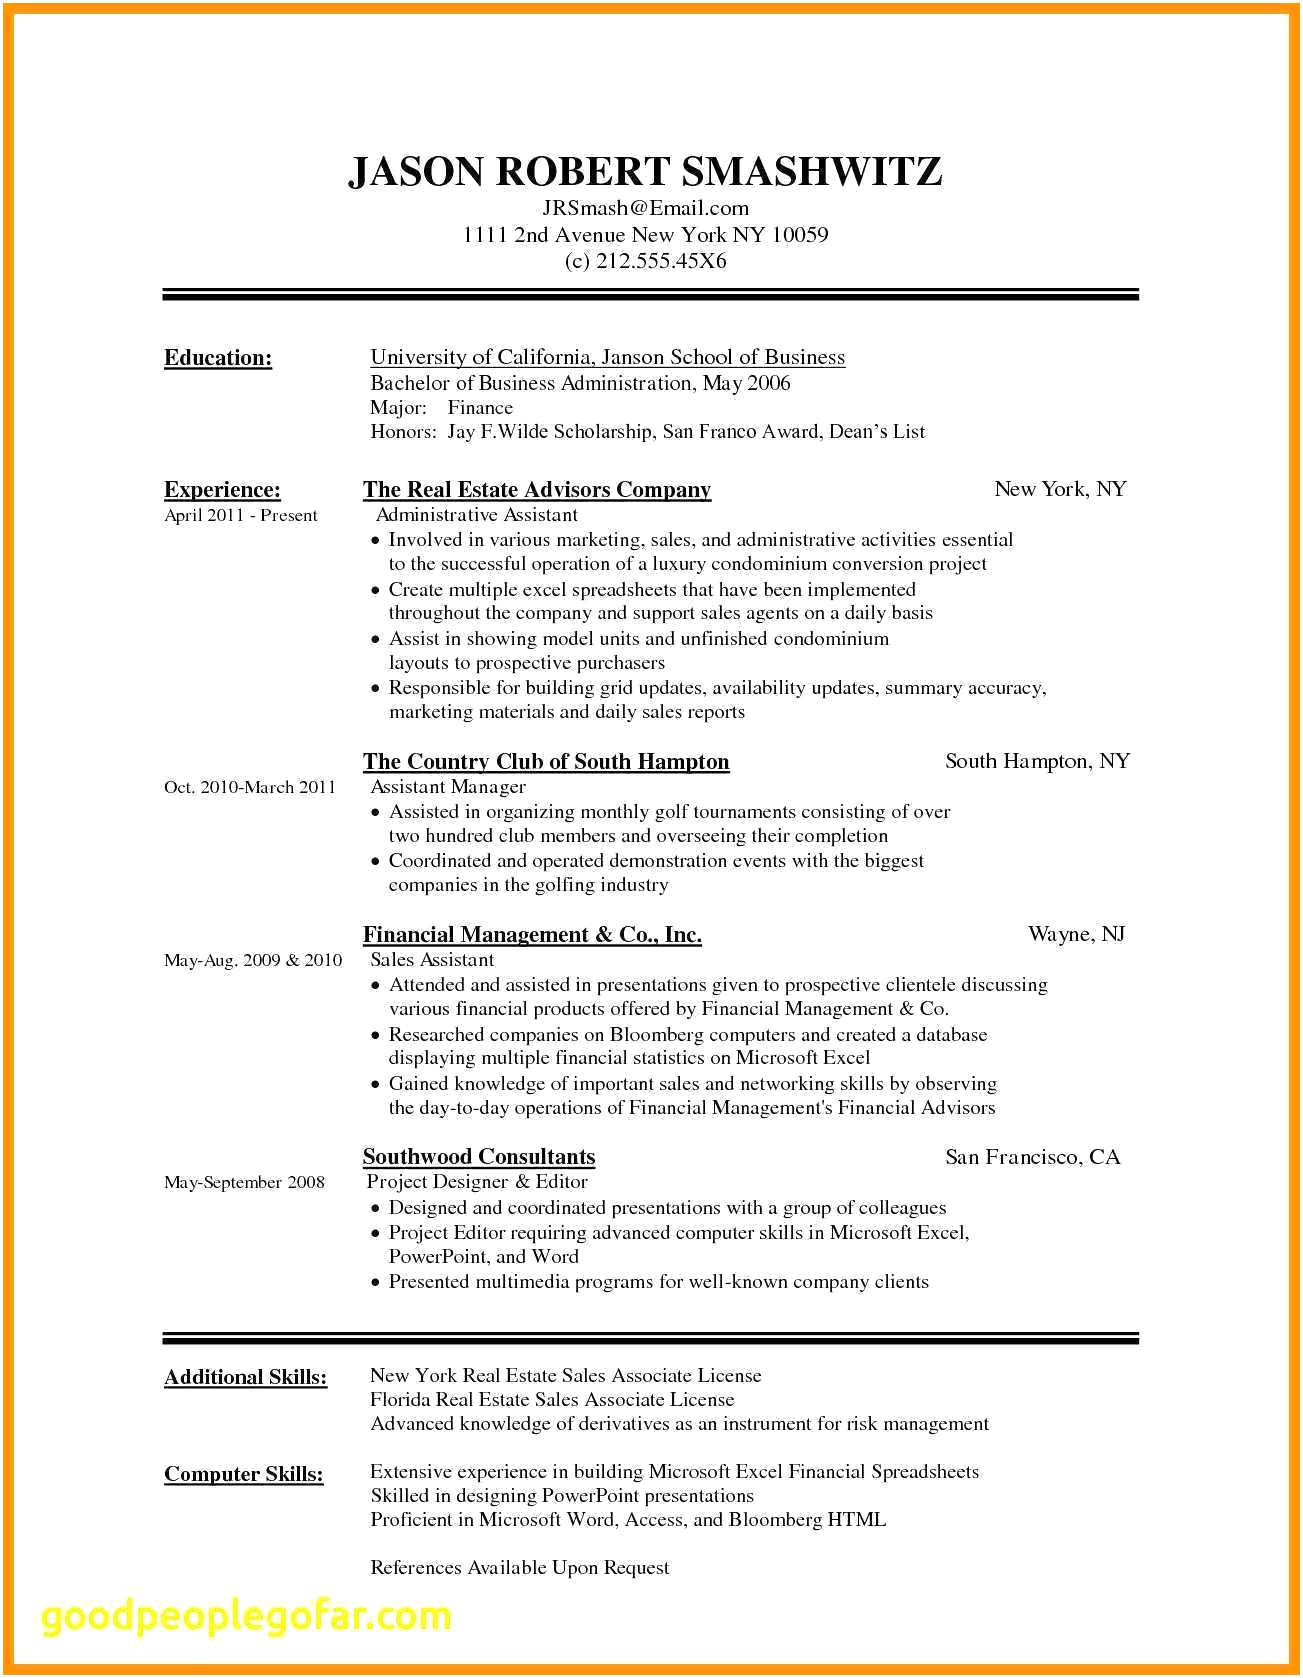 Resume Templates for Mac - 46 Fresh Free Resume Templates for Mac